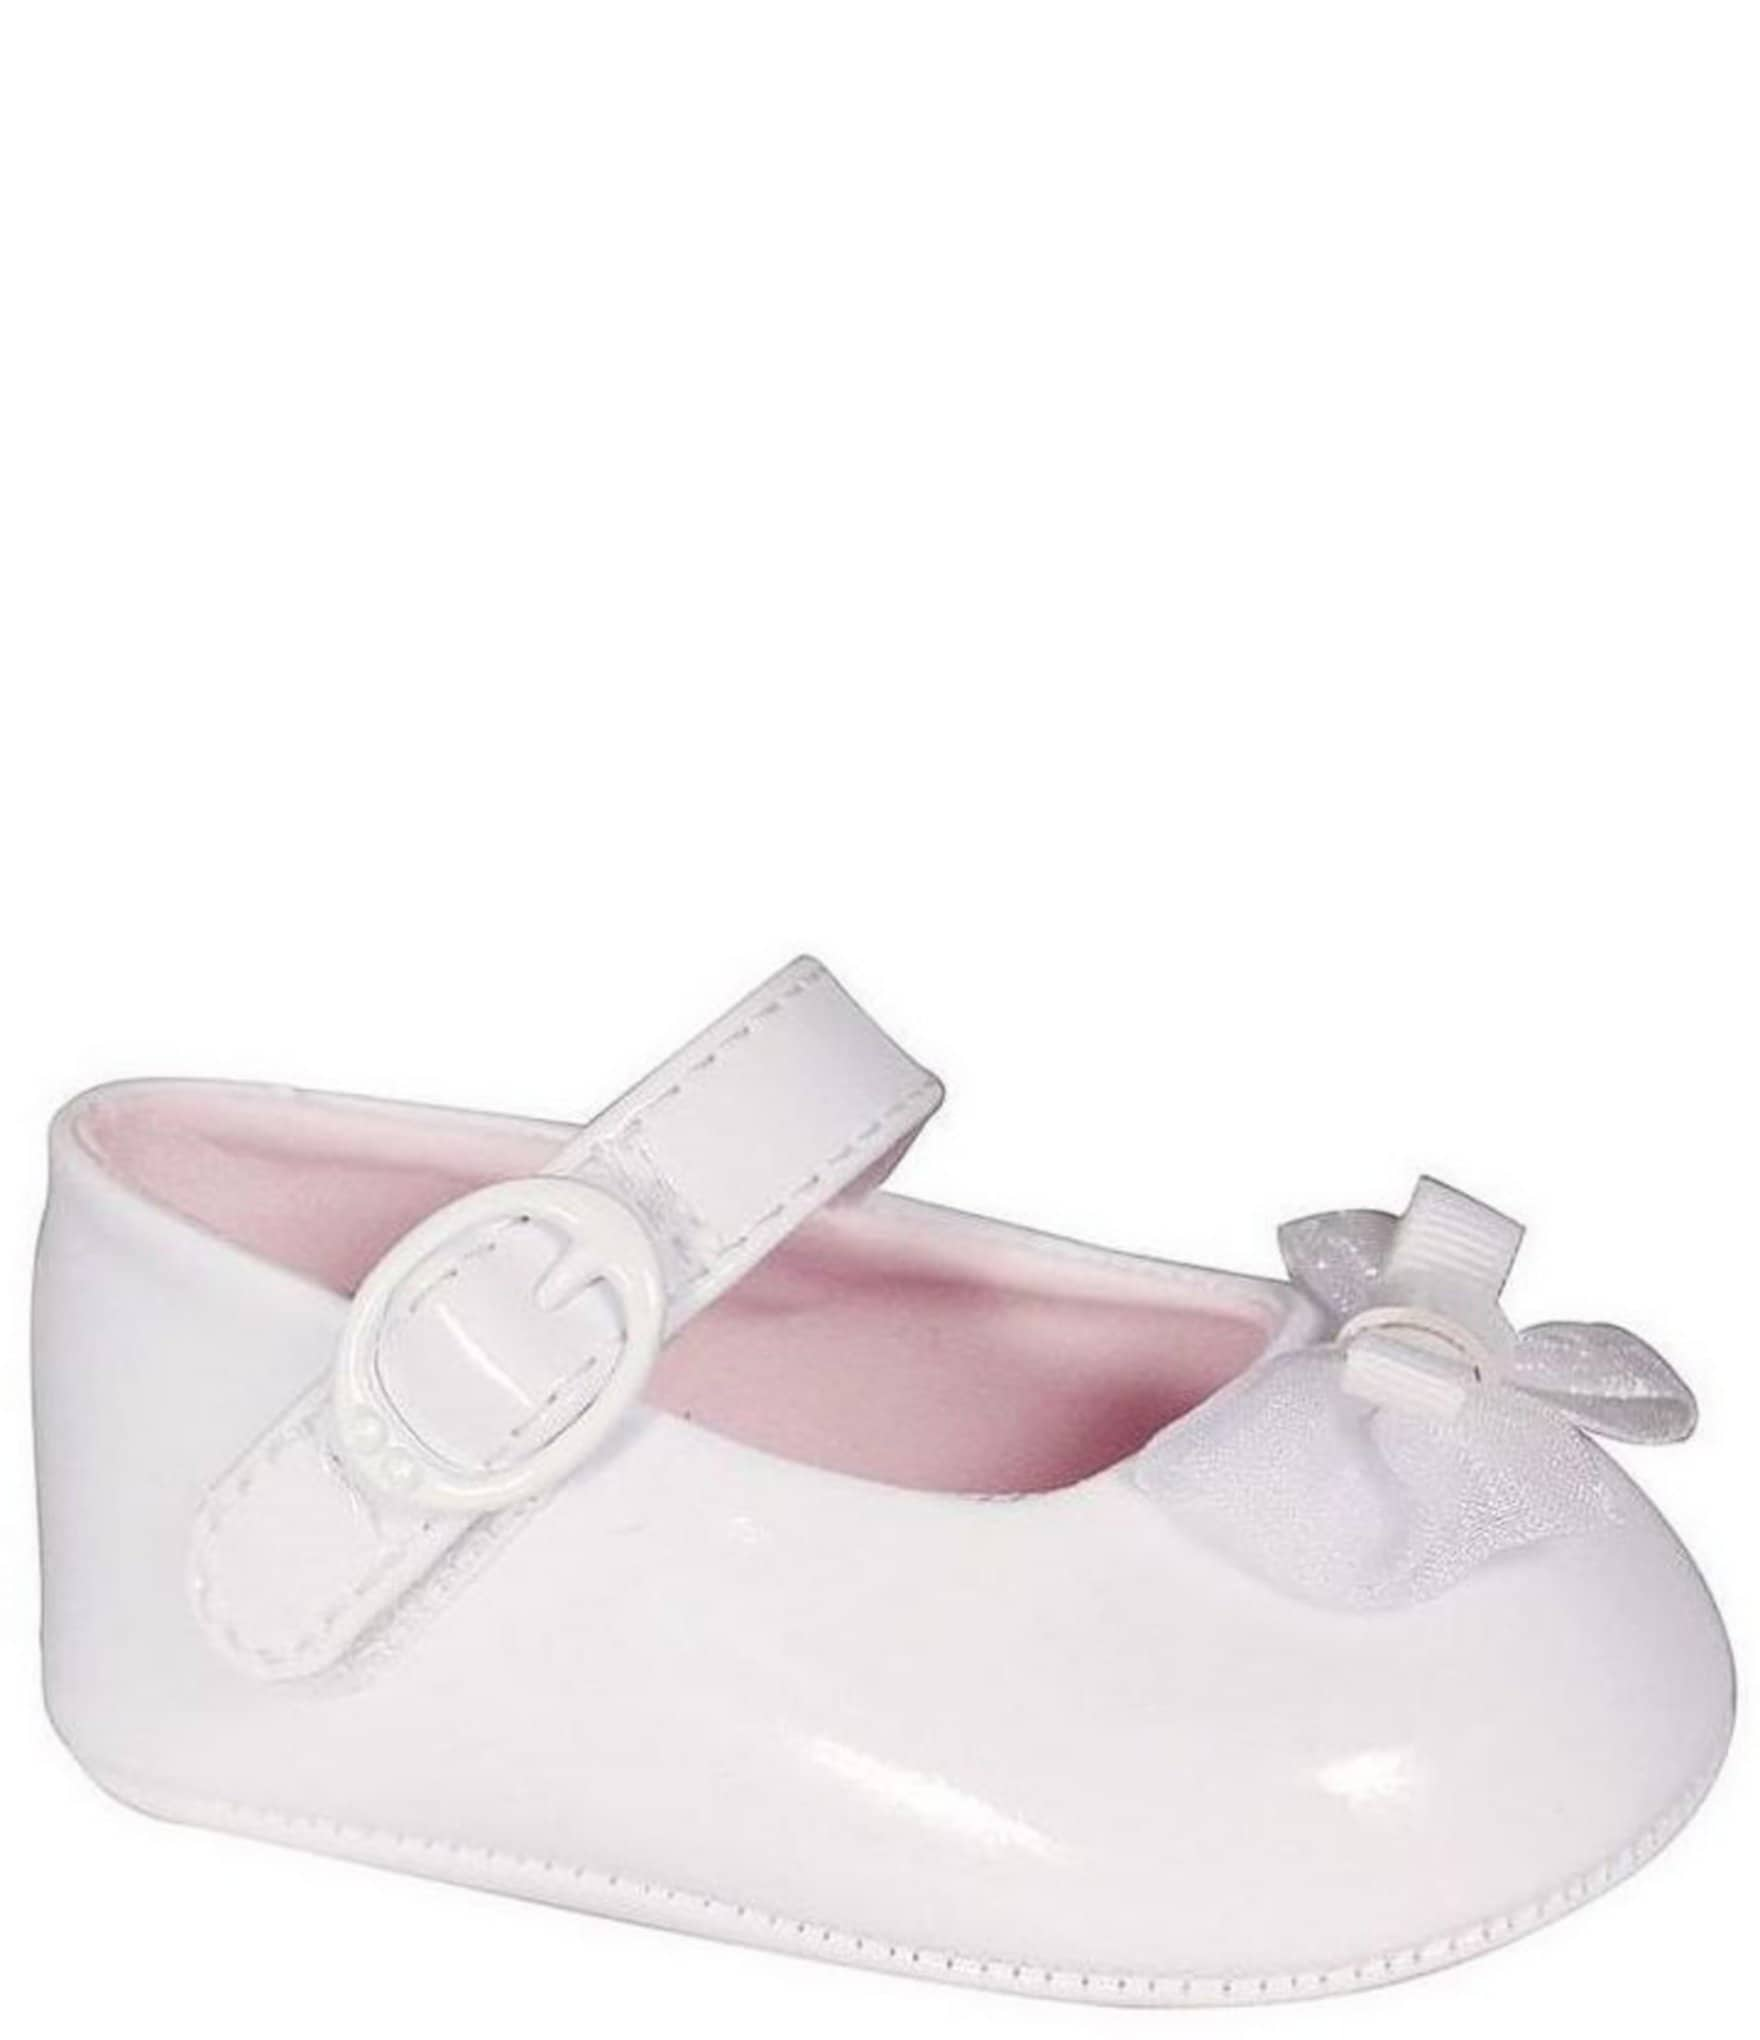 a64876dca Pull-On Baby Girls' Dress Shoes | Dillard's